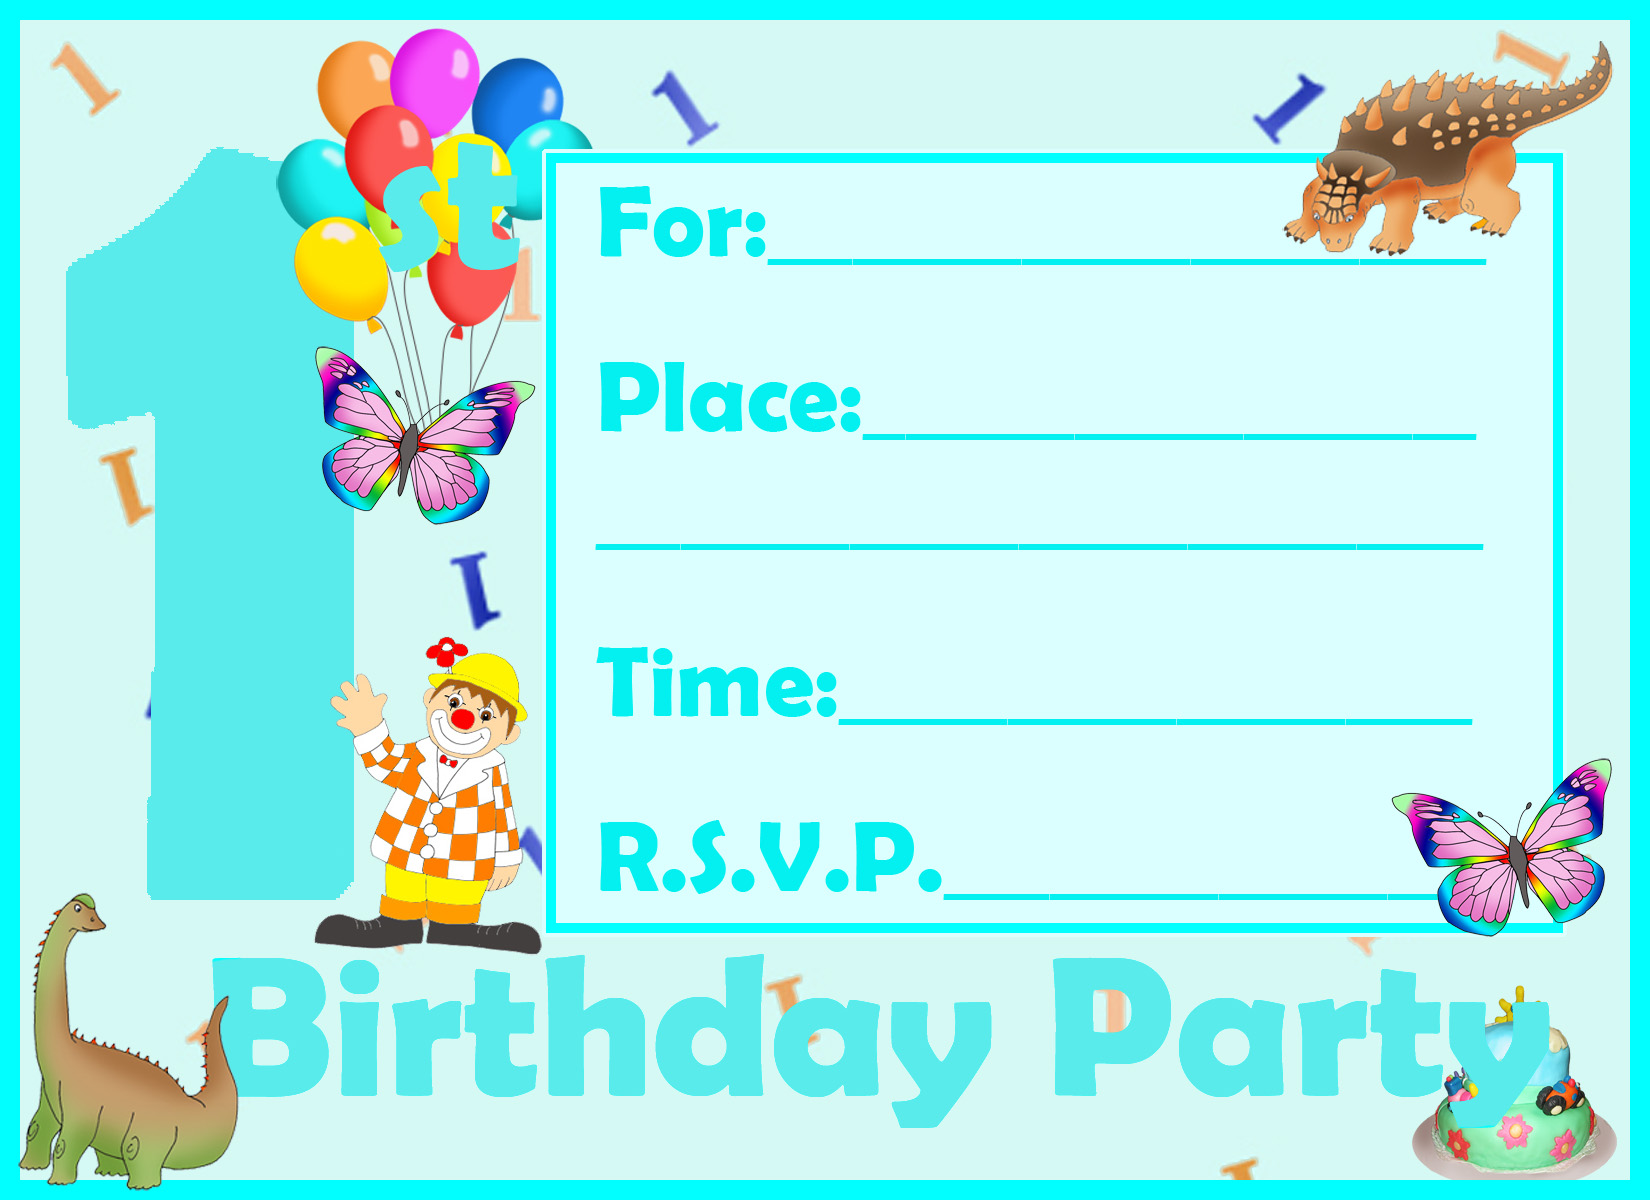 birthday invitation card clipart ; perfect-sample-printable-birthday-invitation-cards-for-boy-blue-background-first-happy-grown-perfect-dinosaurus-picture-clipart-ballon